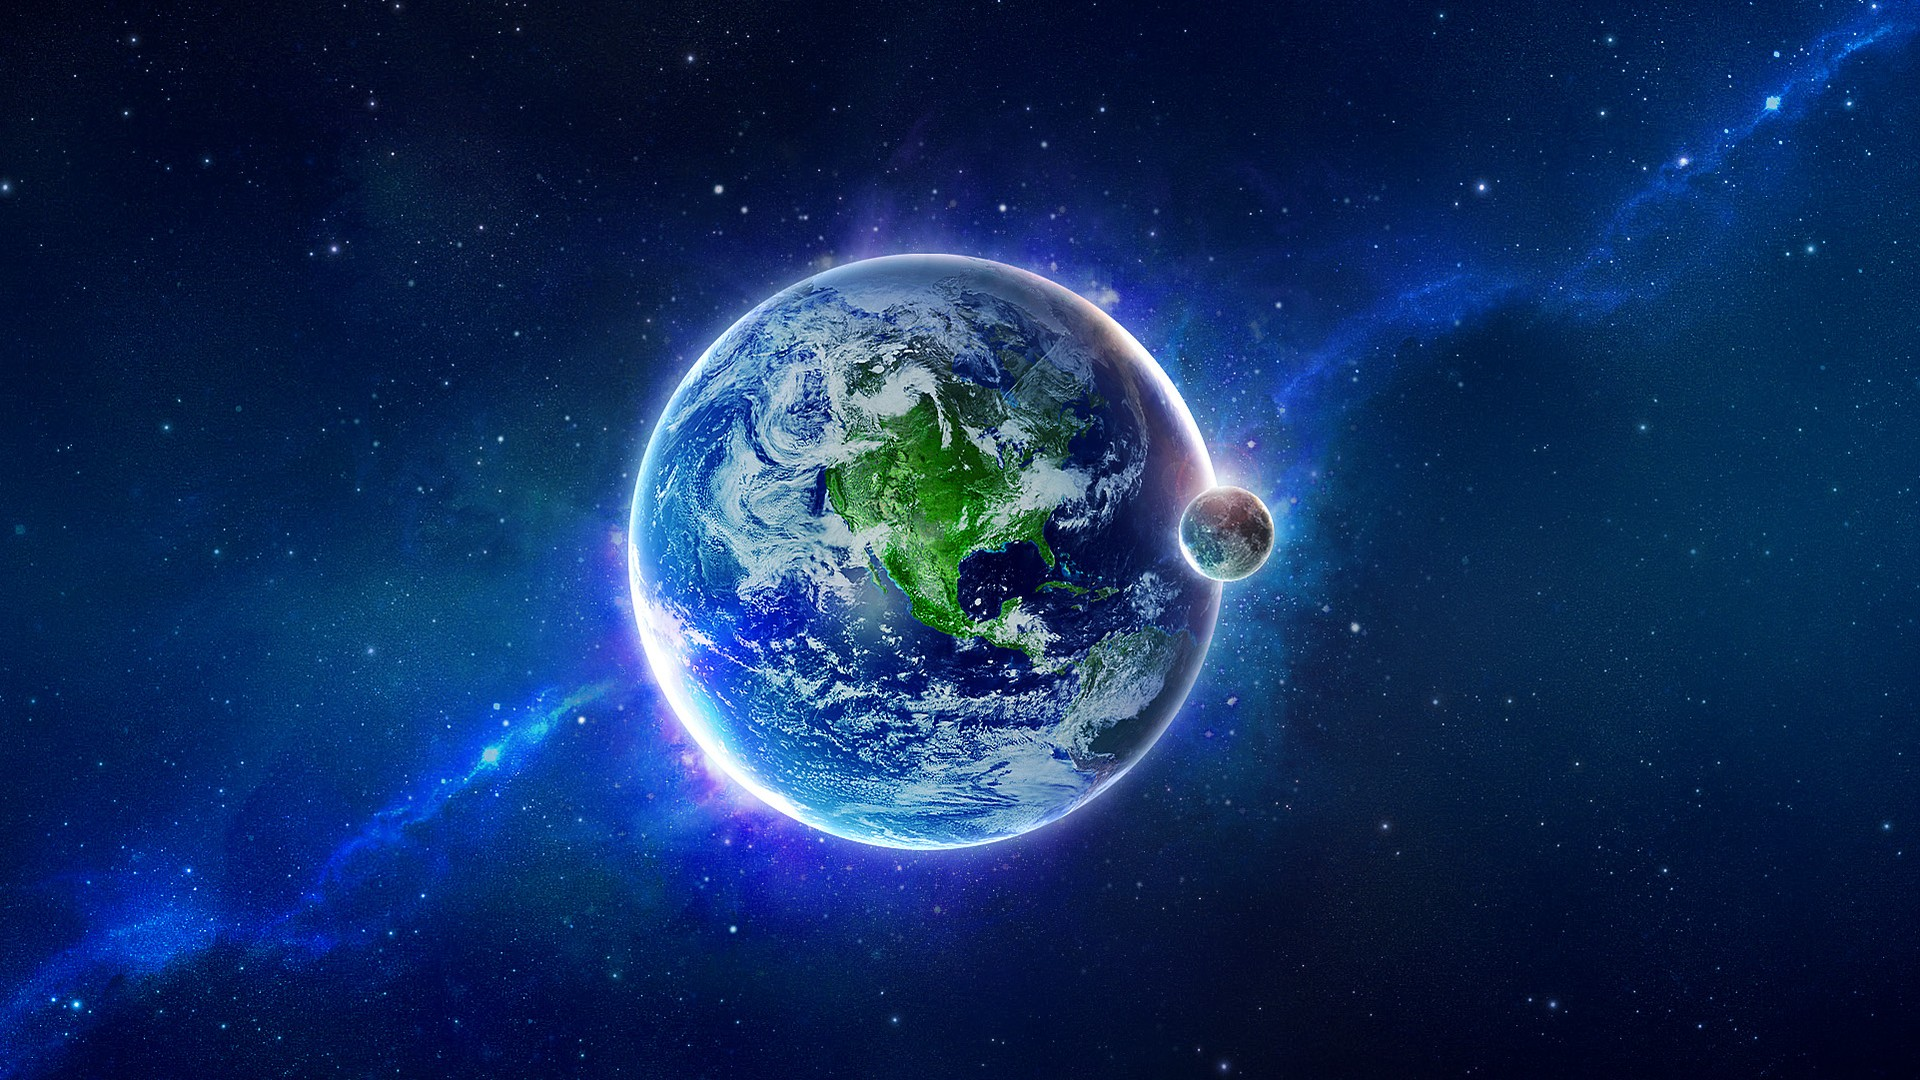 Wallpaper Earth Planets Space 1920x1080